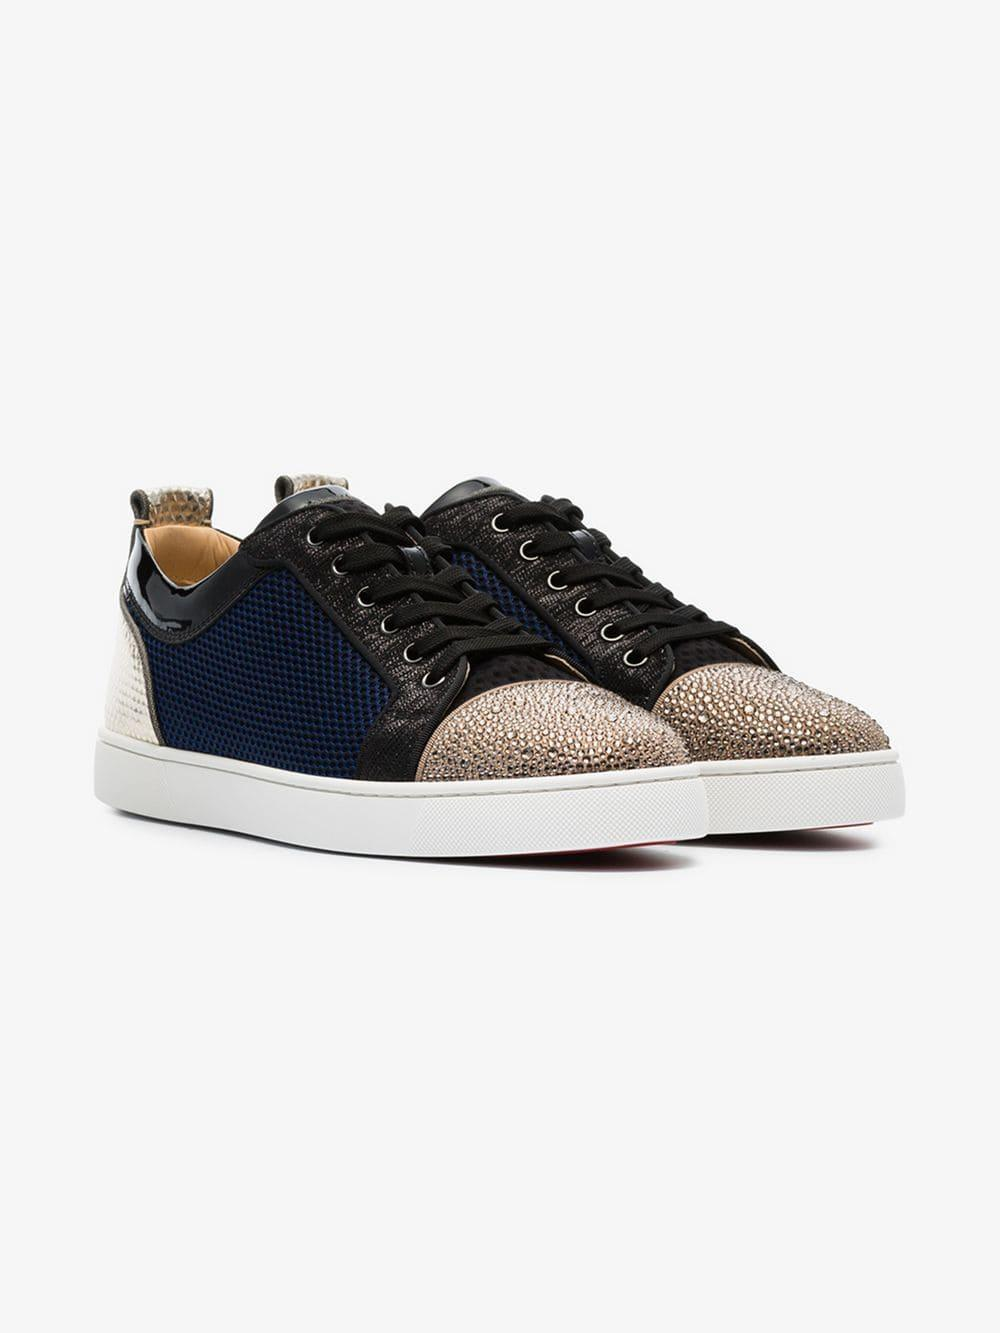 392051115ae Lyst - Christian Louboutin Multicoloured Louis Junior Rhinestone-embellished  Leather Low-top Sneakers for Men